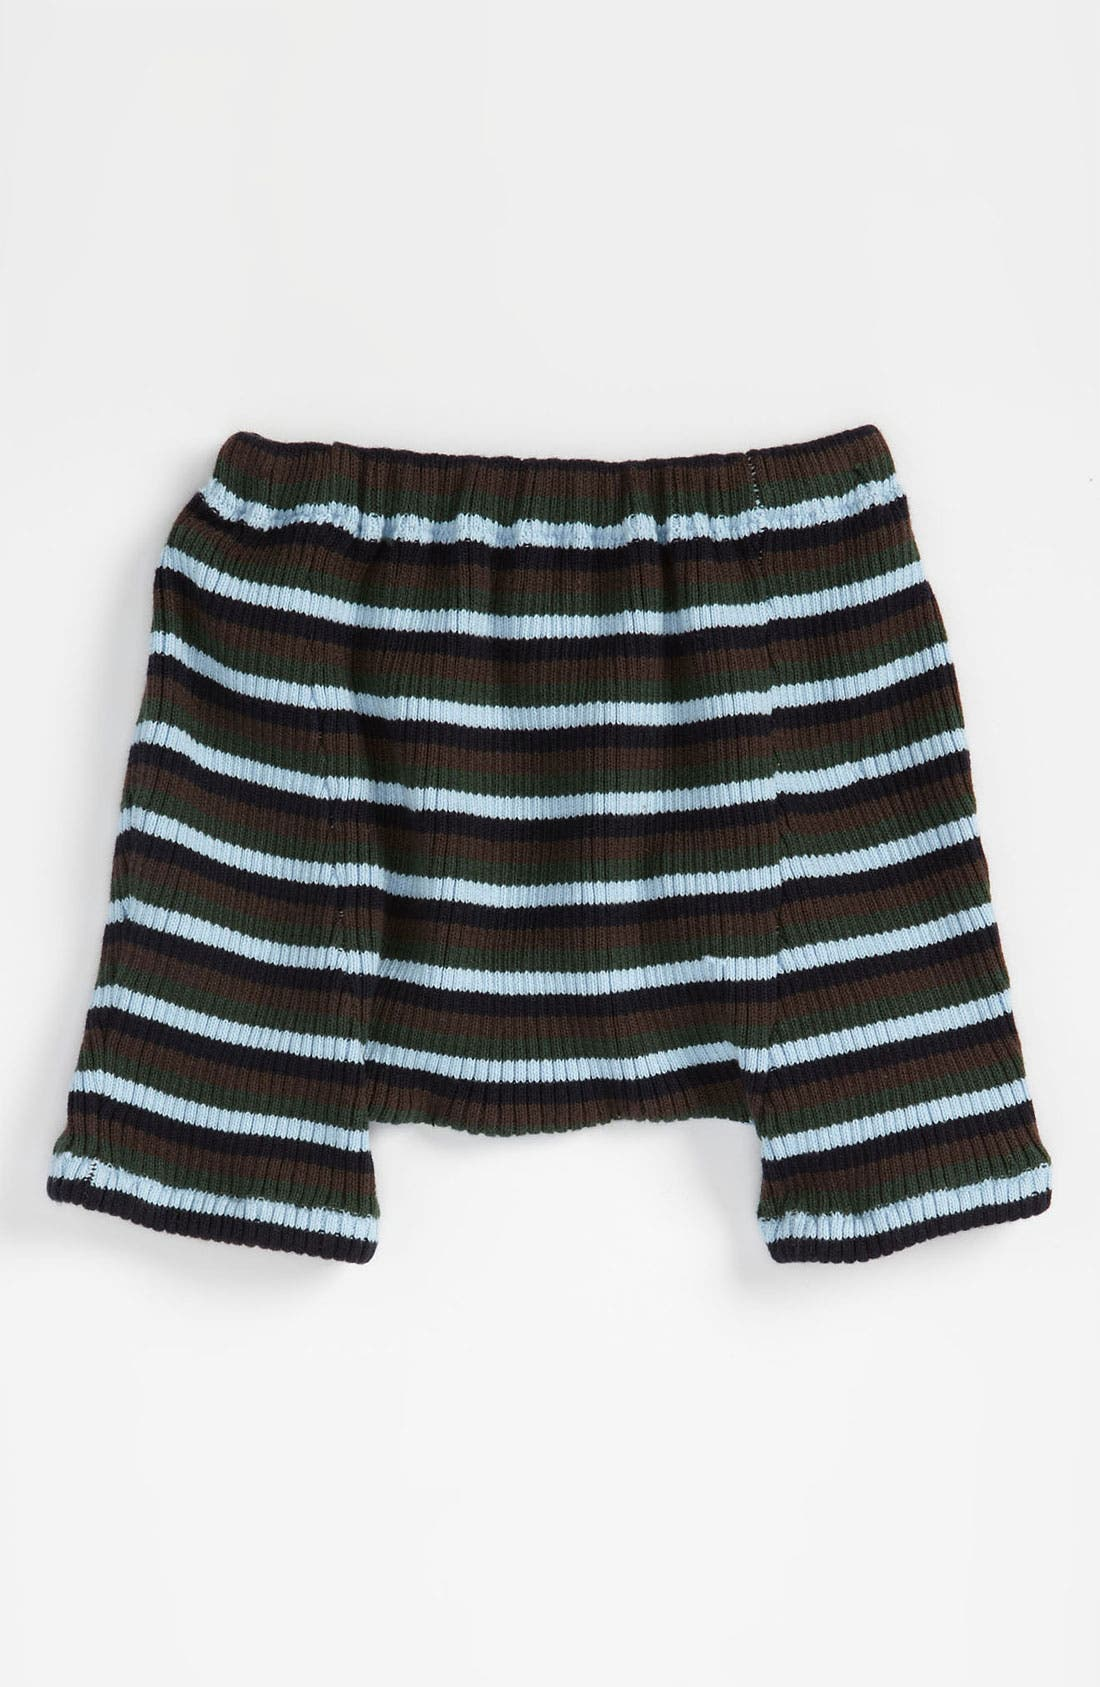 Alternate Image 1 Selected - Peek 'Sasha' Stripe Pants (Infant)